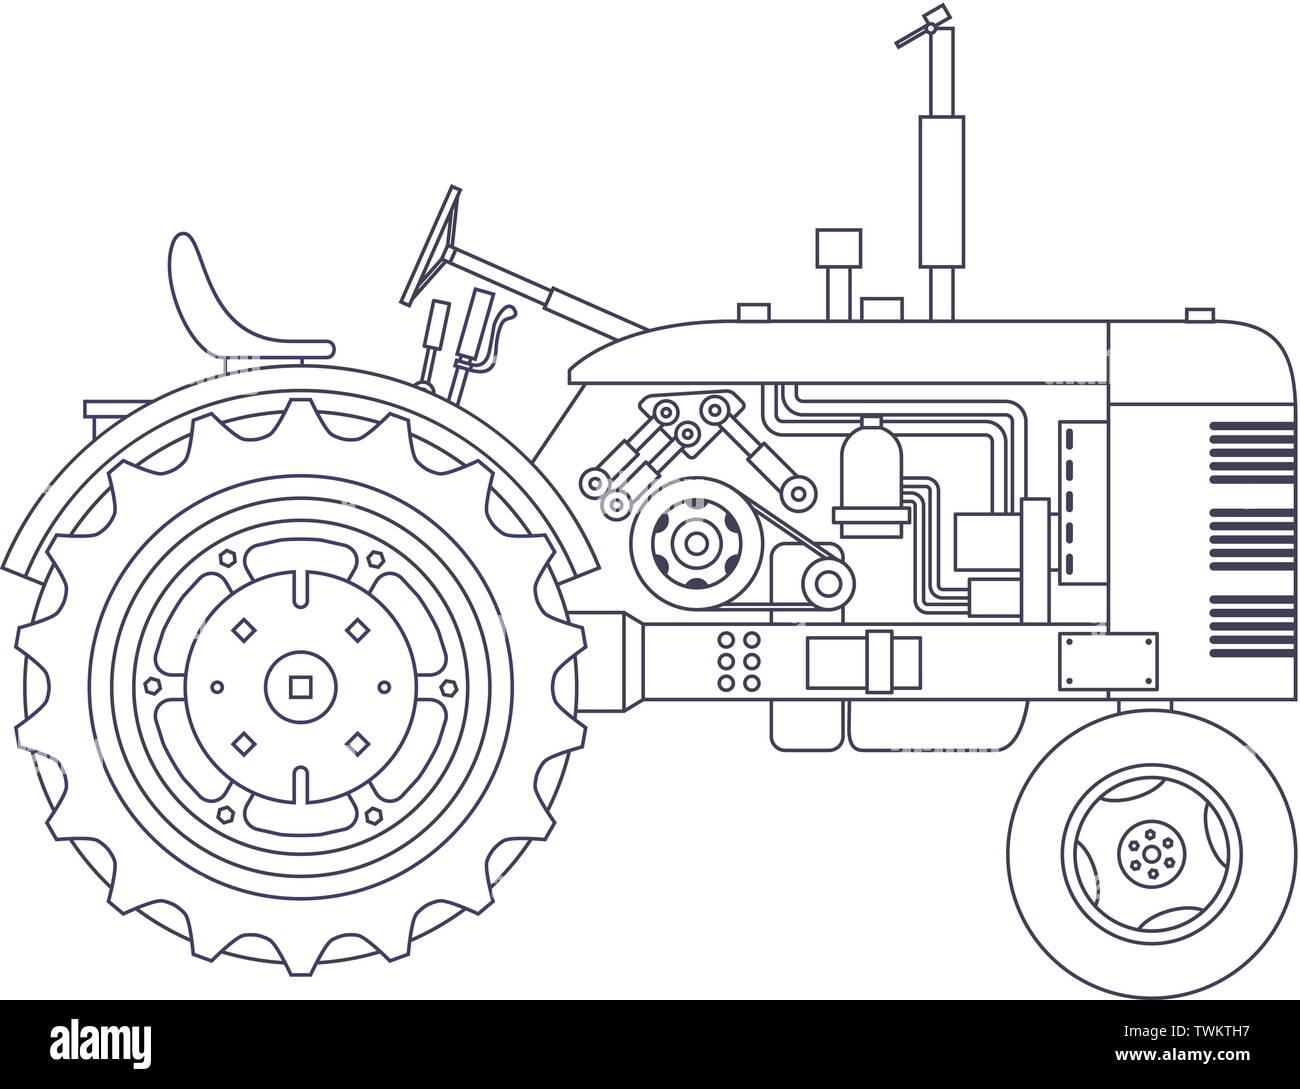 Vintage agricultural tractor isolated on white vackground. Vector illustration - Stock Vector